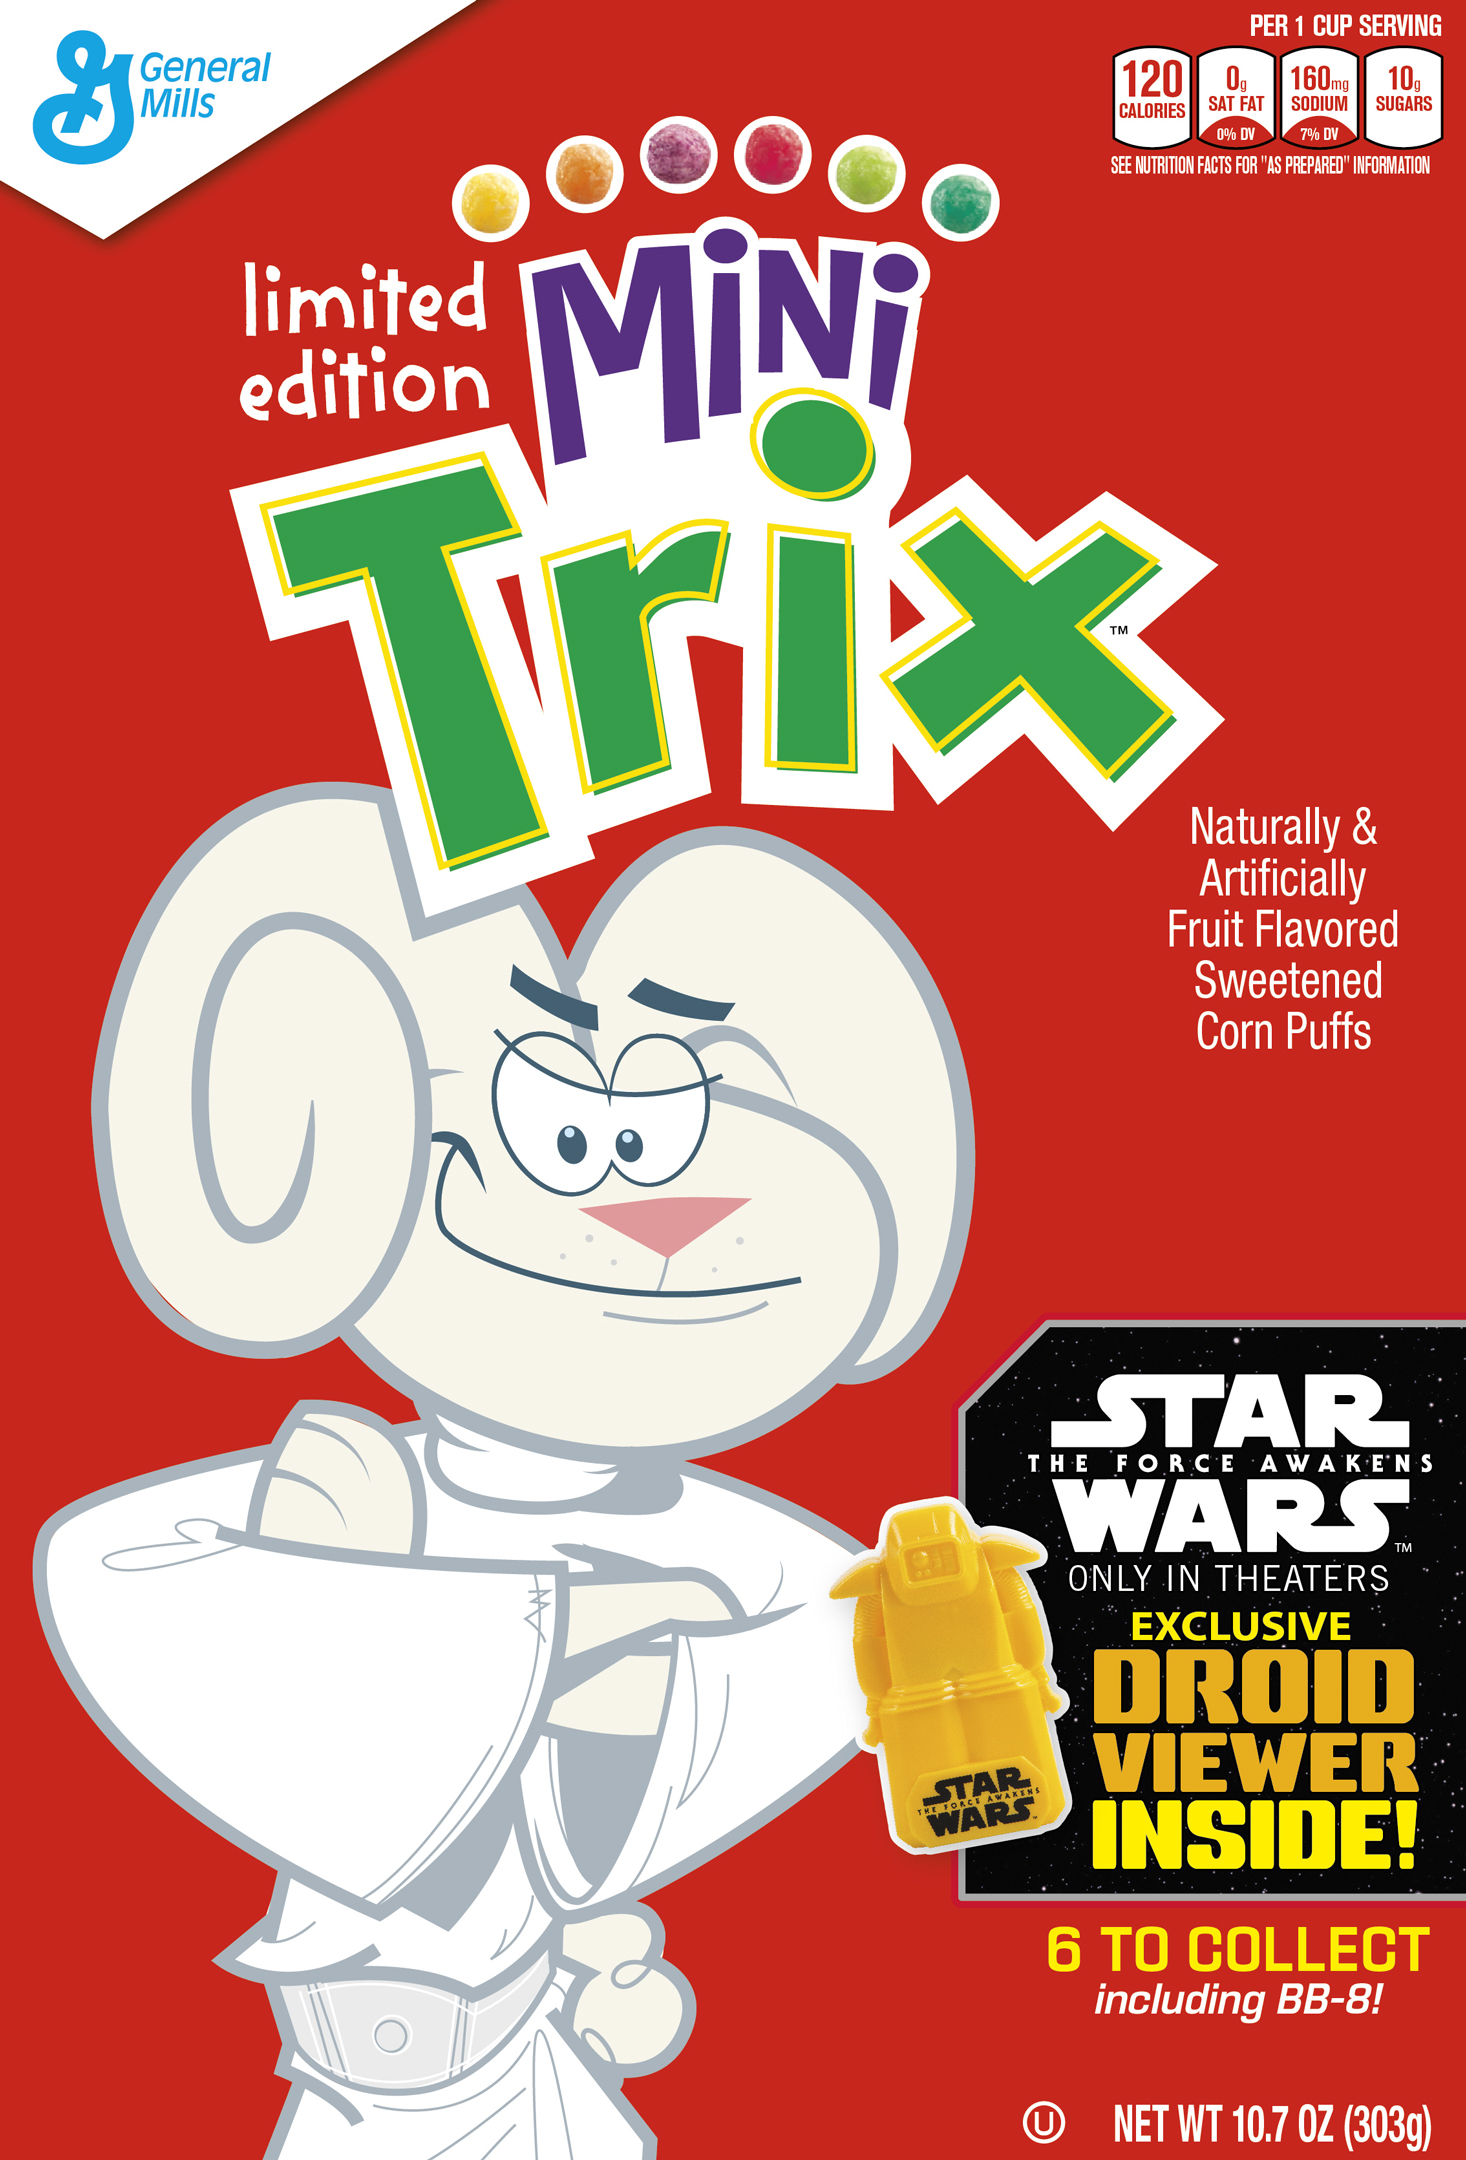 General Mills Cereals Have the Droids